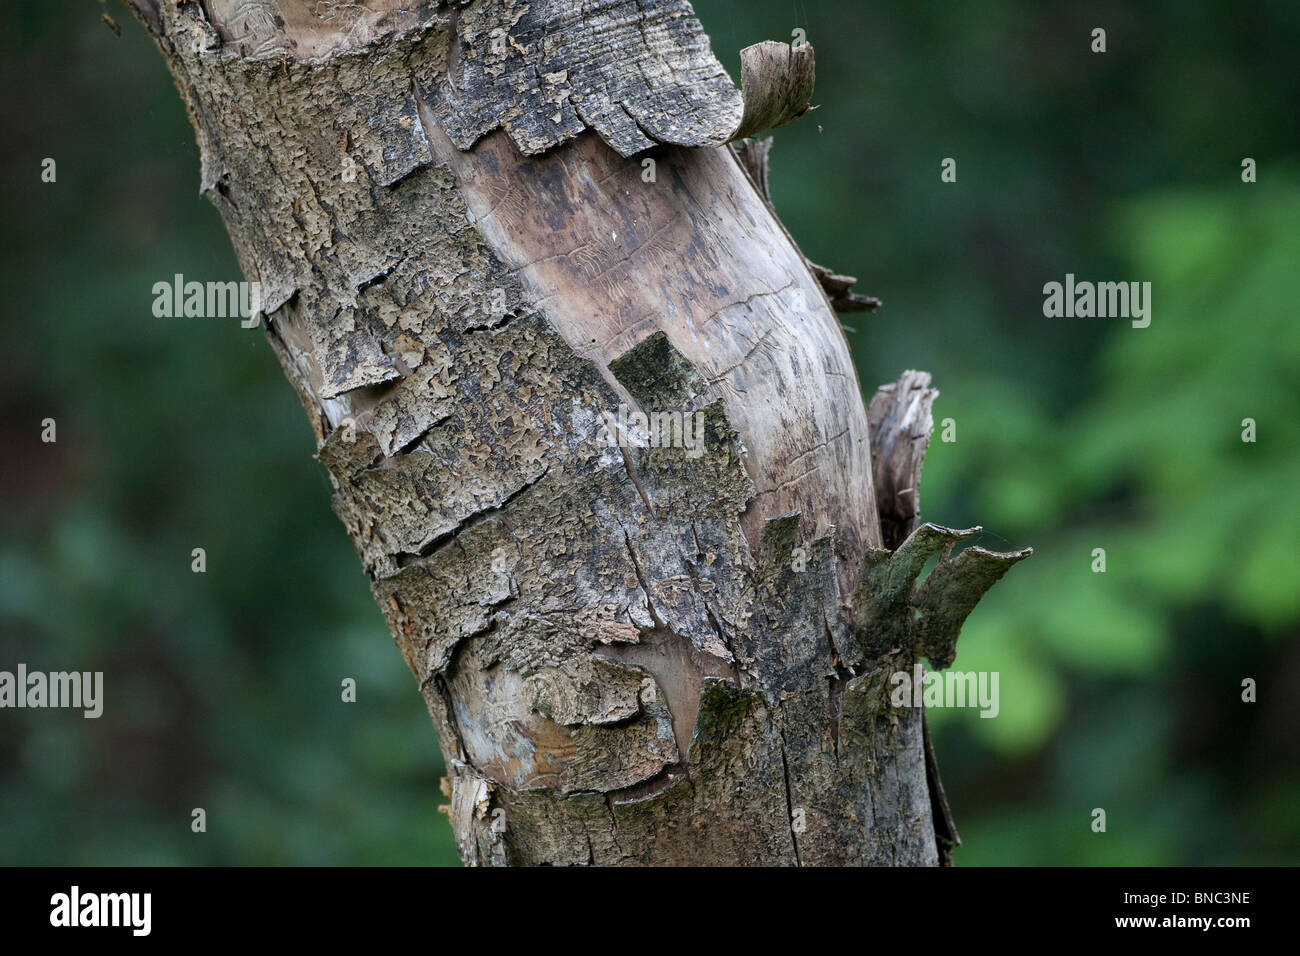 Bark peeling from dead tree showing marks of insect larvae galleries. - Stock Image